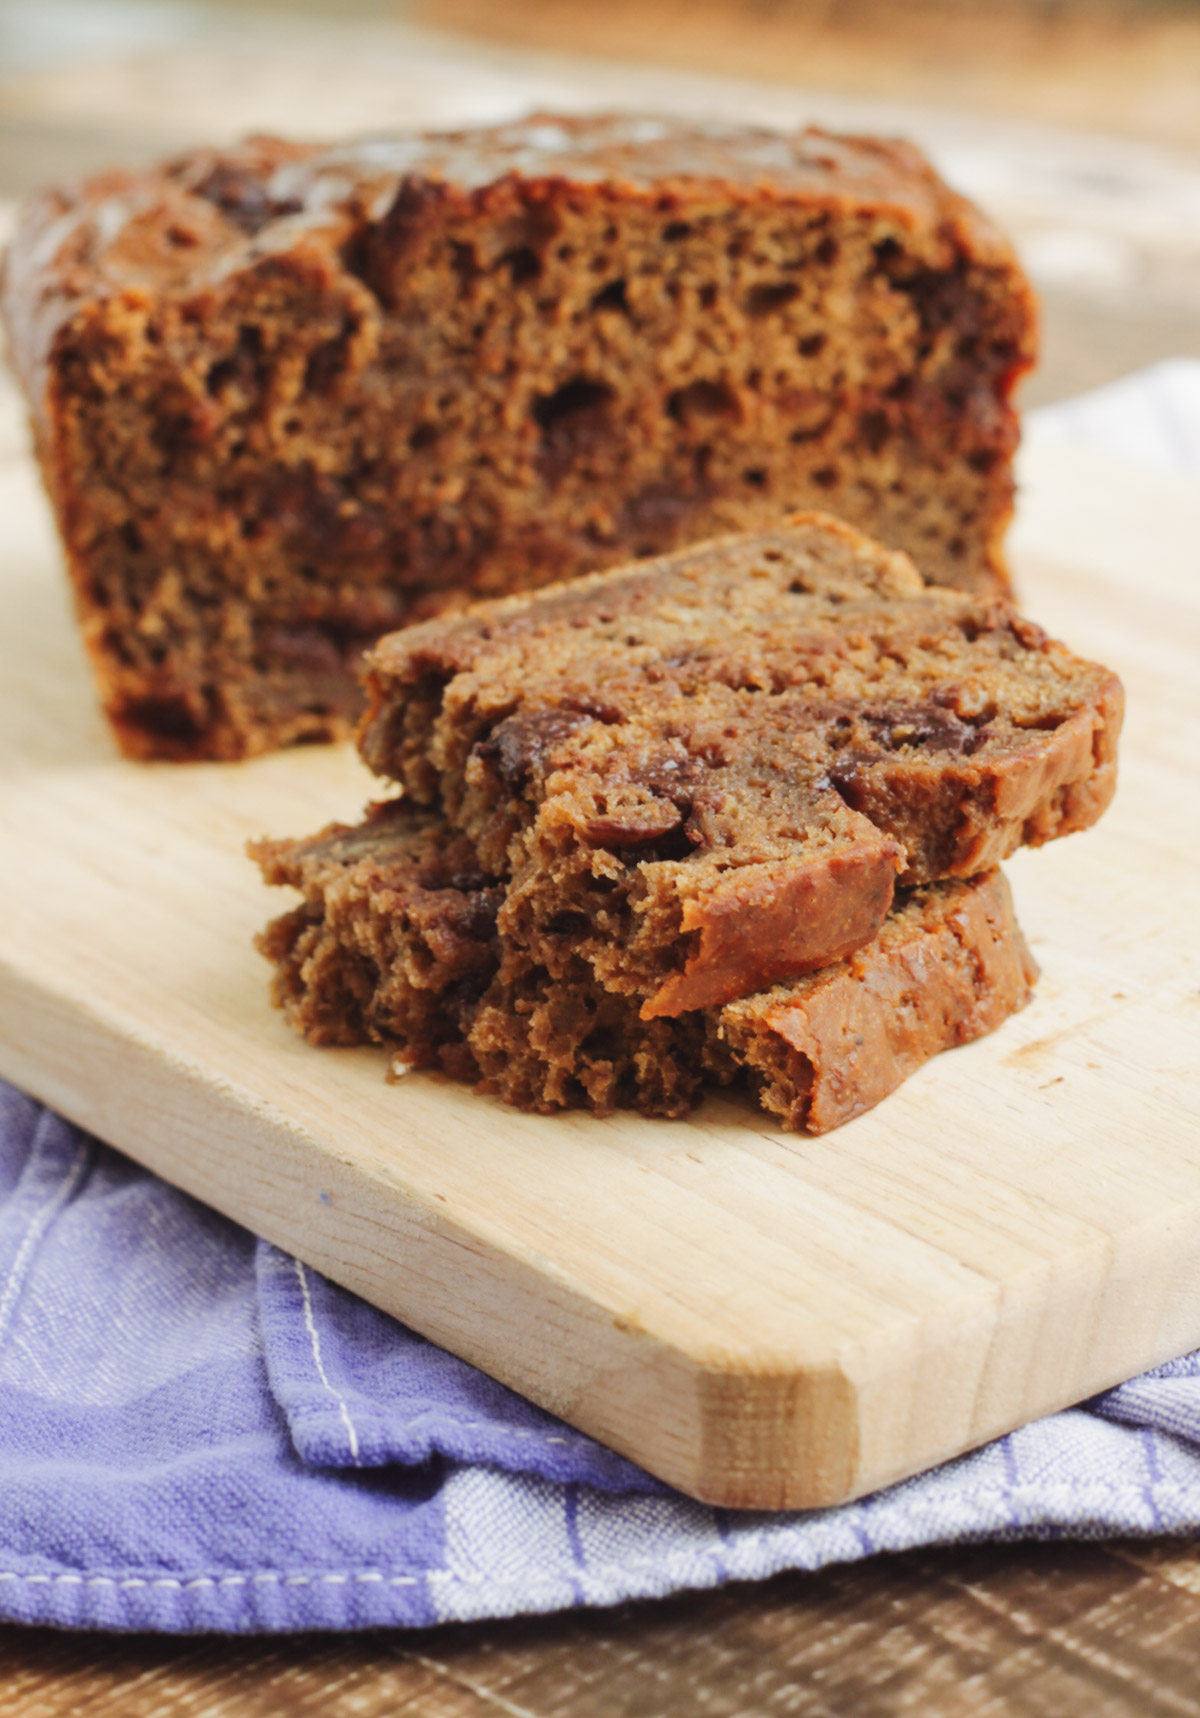 Two slices of chocolate chip banana bread with full loaf in background on a wooden cutting board and blue towel.